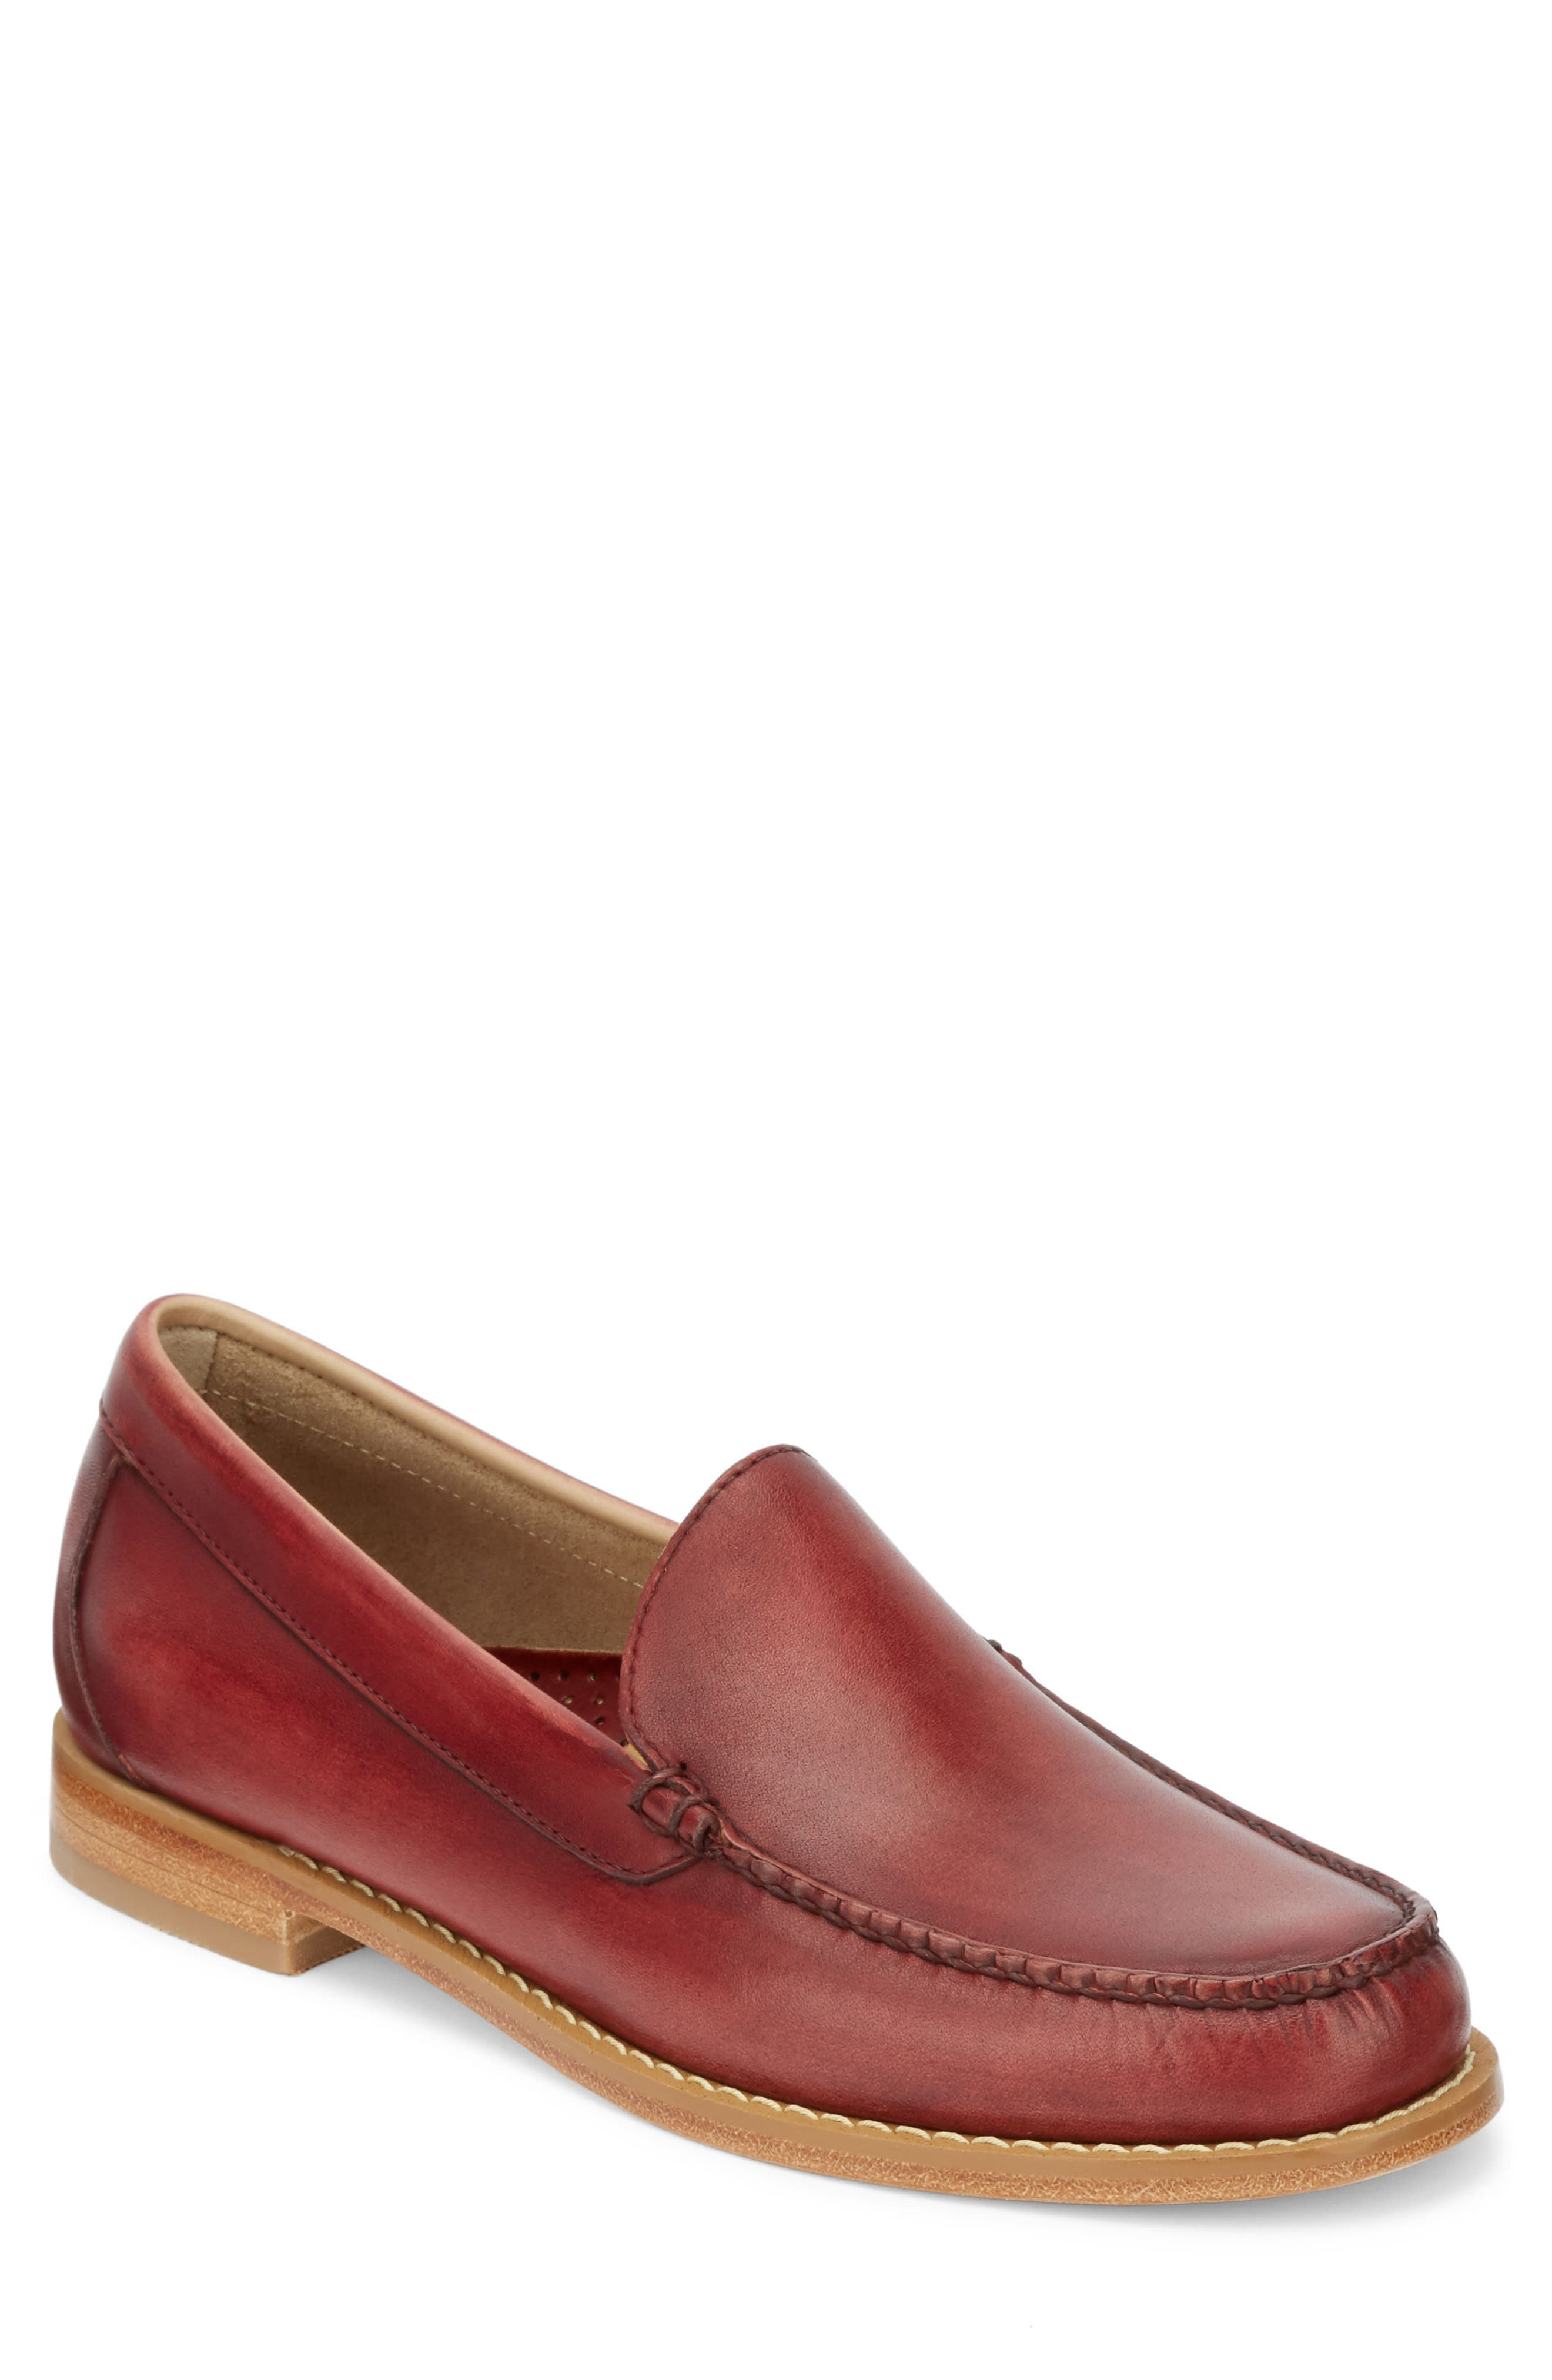 Moc Toe Loafer,                         Main,                         color, RED LEATHER